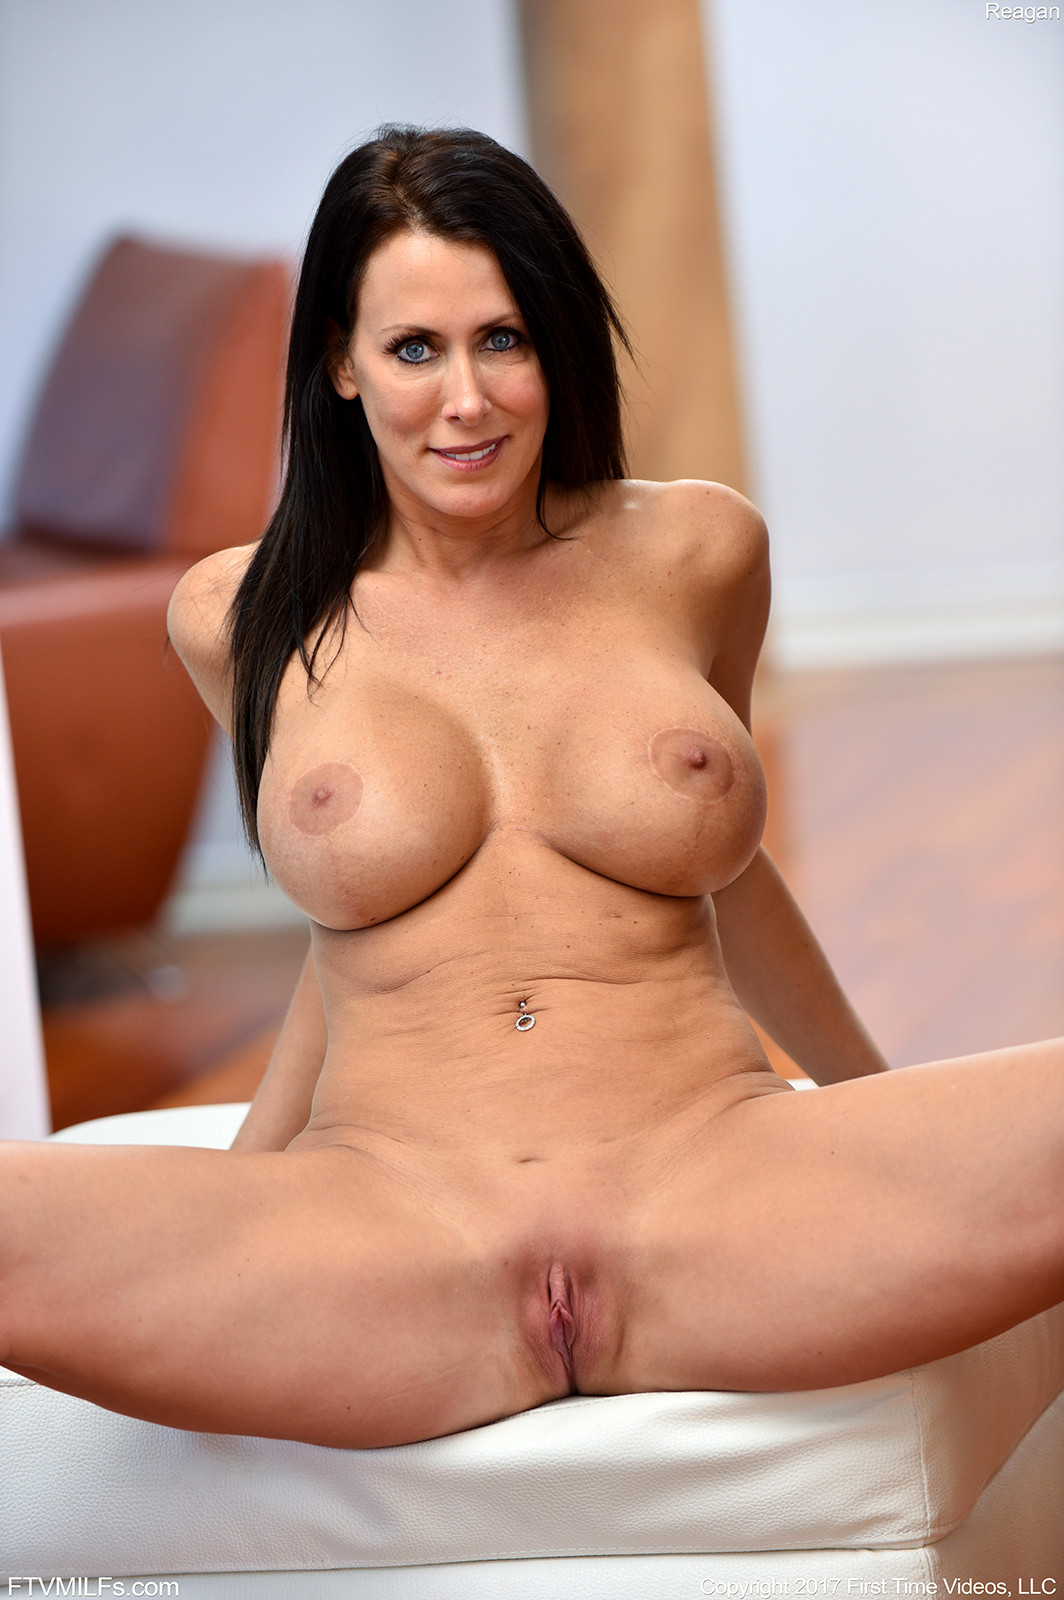 Ftvmilfs Reagan Foxx Most Mature Full Sexvideo Free -4195